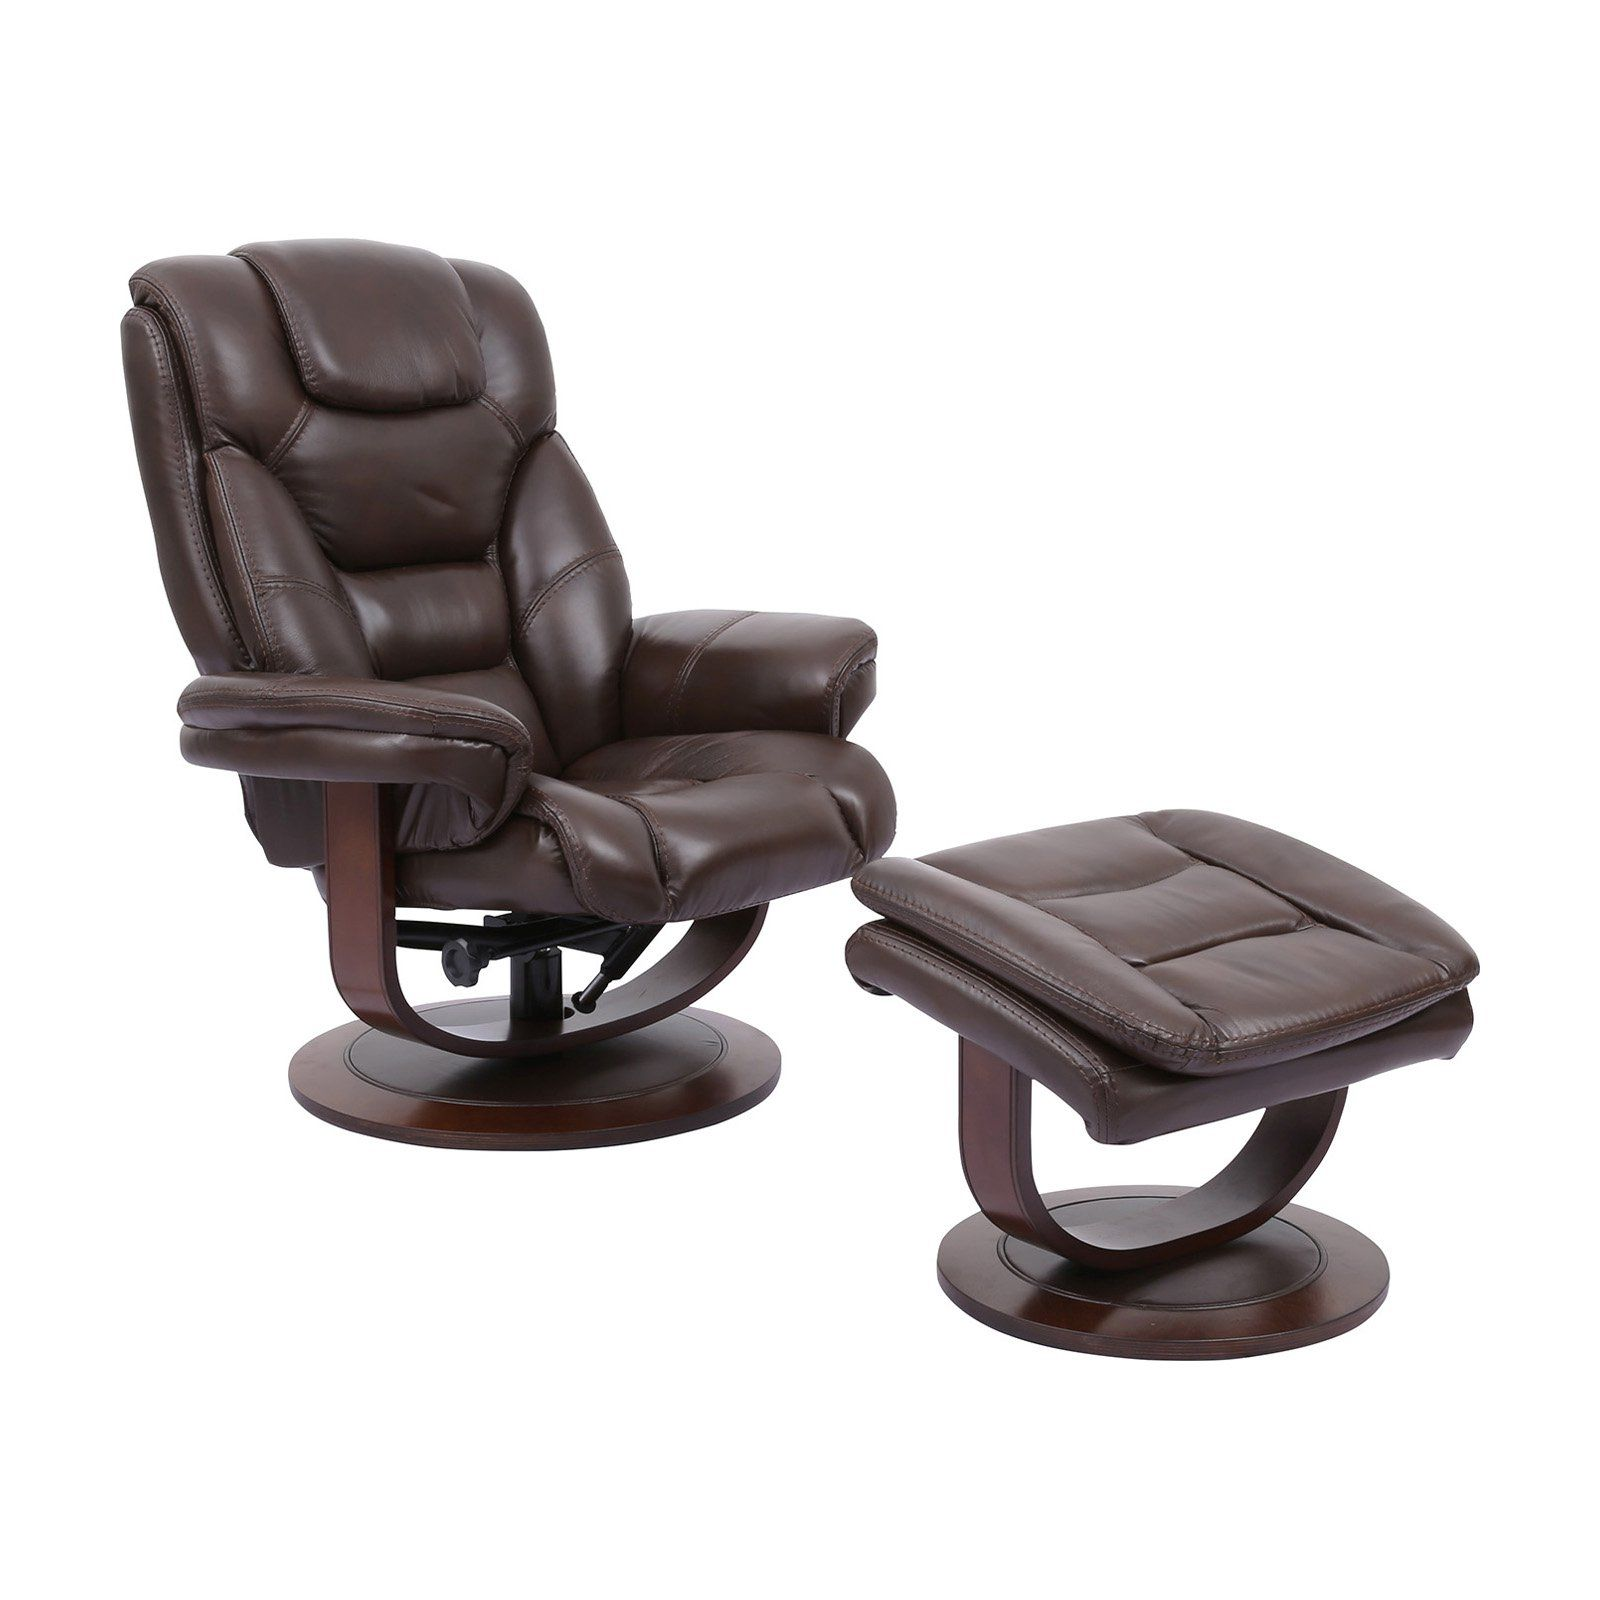 Amazing Parker House Monarch Swivel Recliner And Ottoman Robust In Unemploymentrelief Wooden Chair Designs For Living Room Unemploymentrelieforg